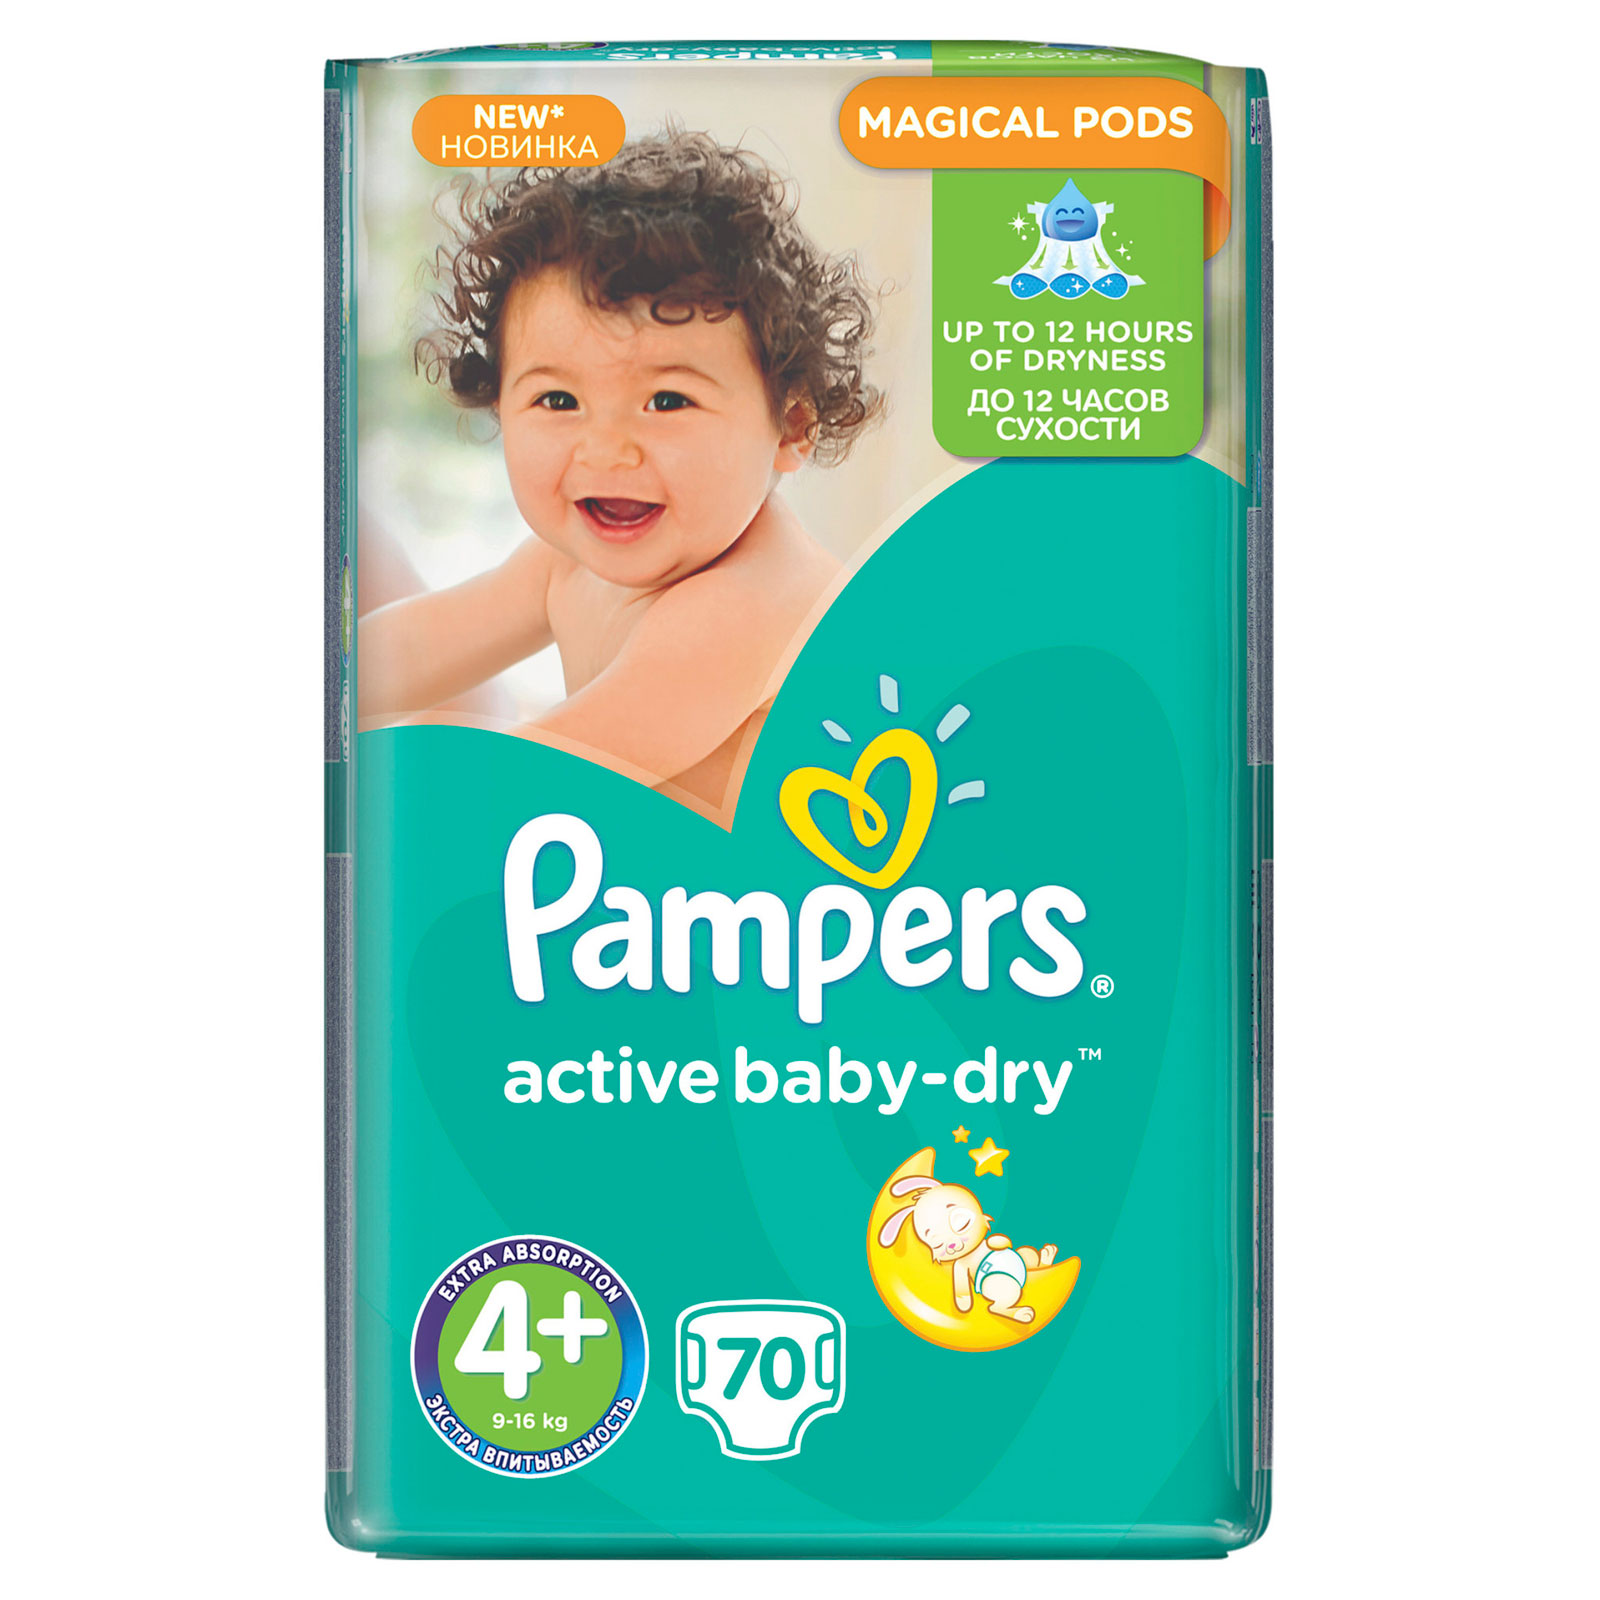 Подгузники Pampers Active Baby Maxi+ 9-16 кг (70 шт) Размер 4+<br>